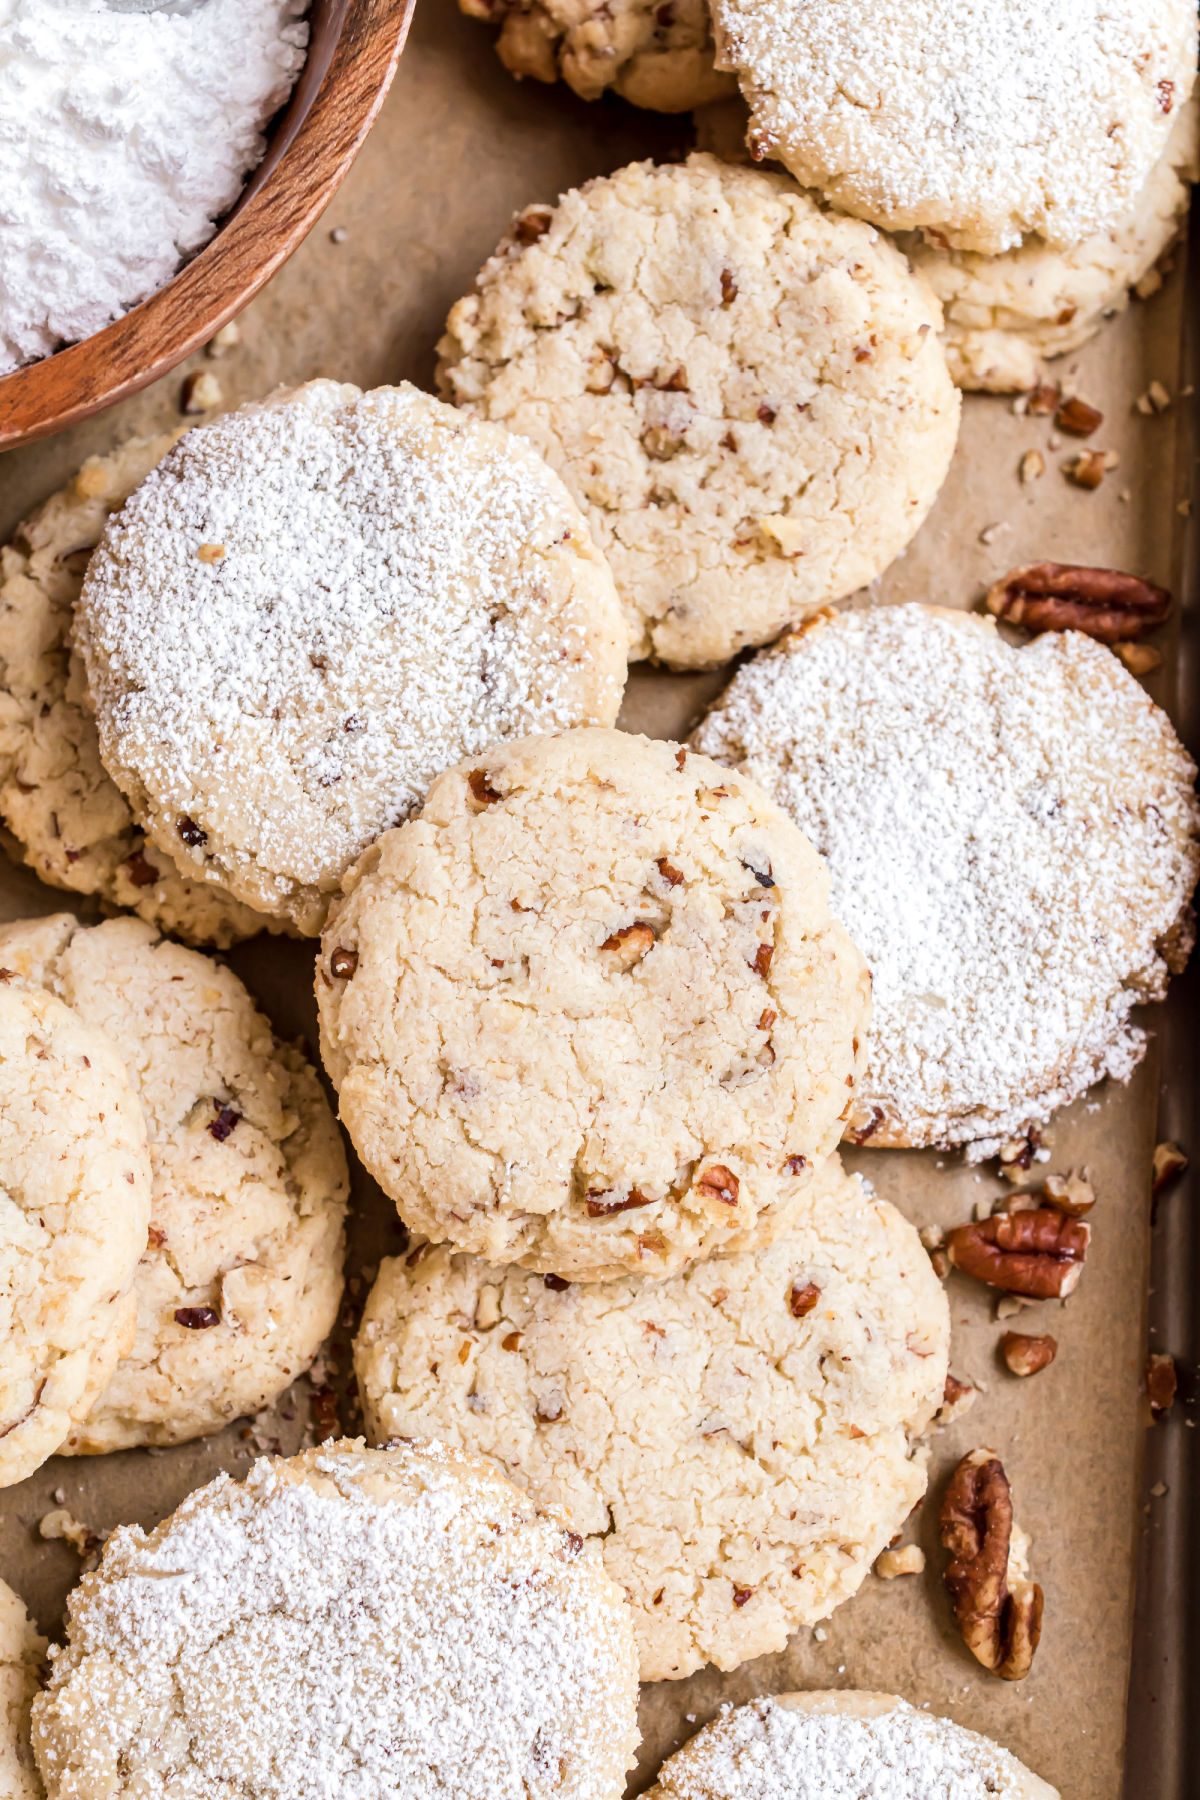 Pecan sandies stacked on a piece of parchment paper.